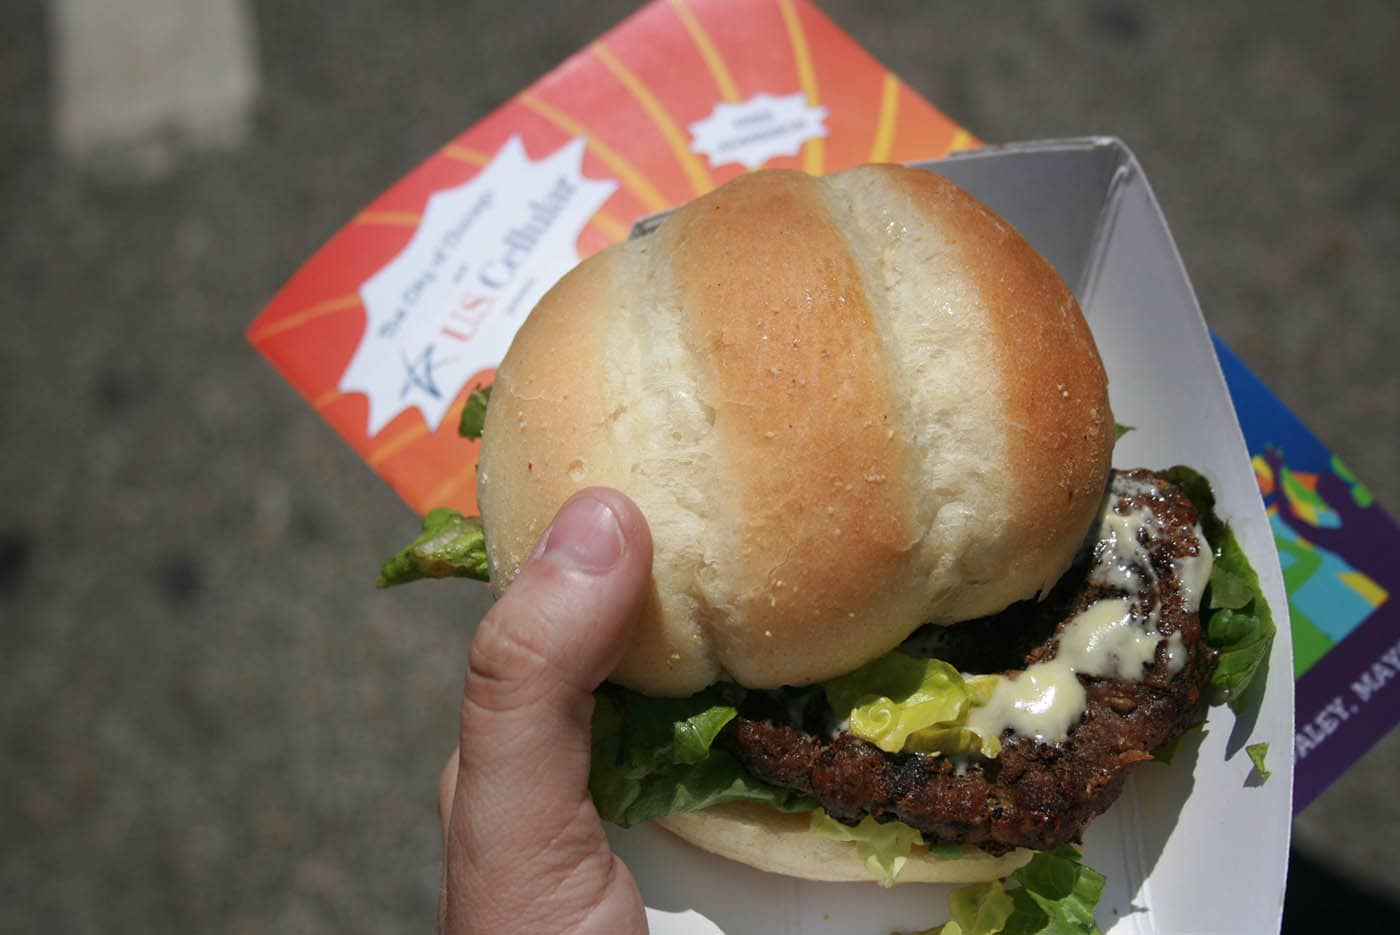 Steak Burger with Blue Cheese and Mustard Sauce from Tutto Italiano at the Taste of Chicago